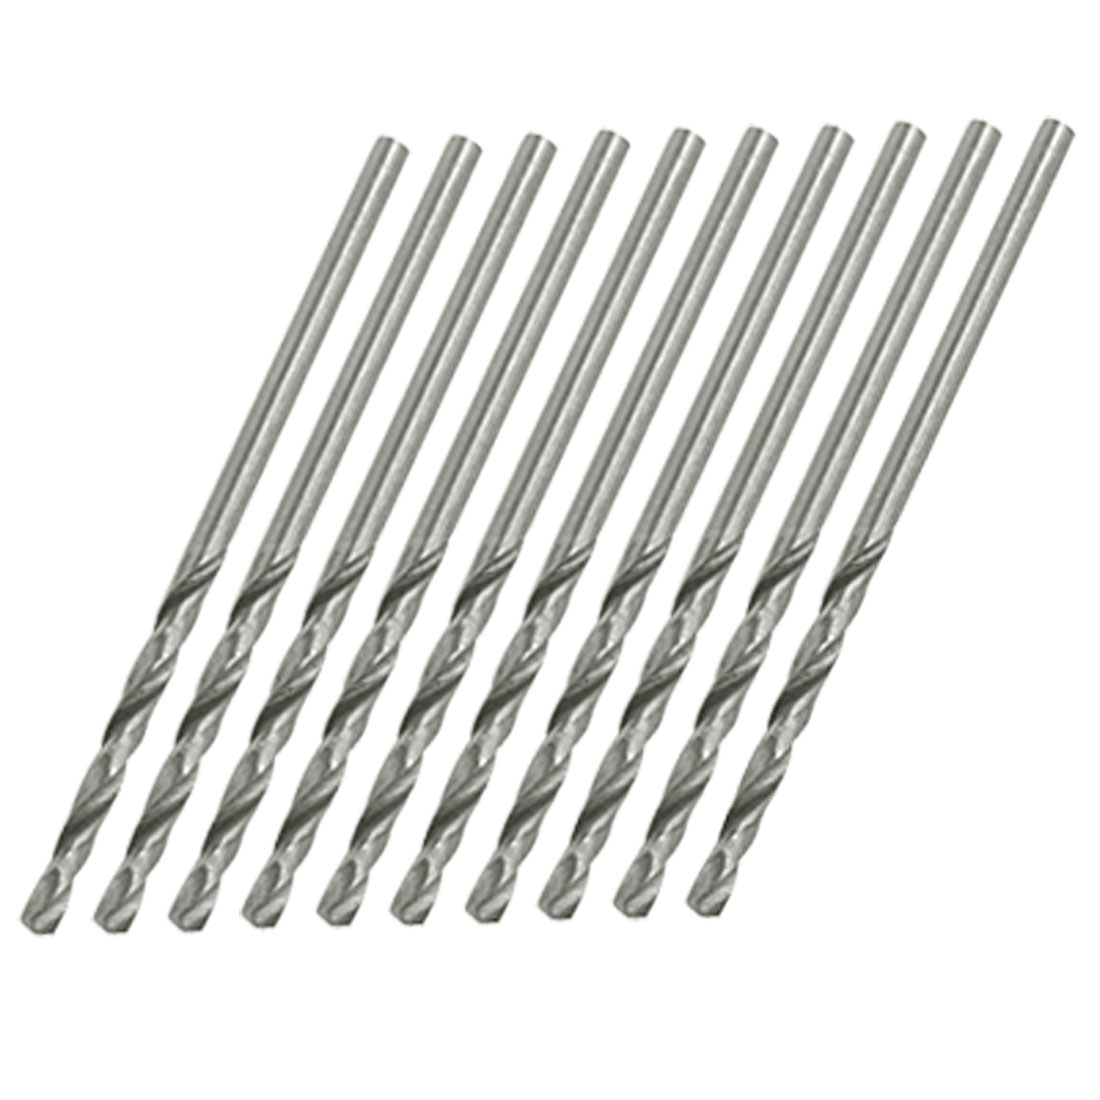 Straight Shank 2mm Dia Metal Drill Twist Bits x 10PCS